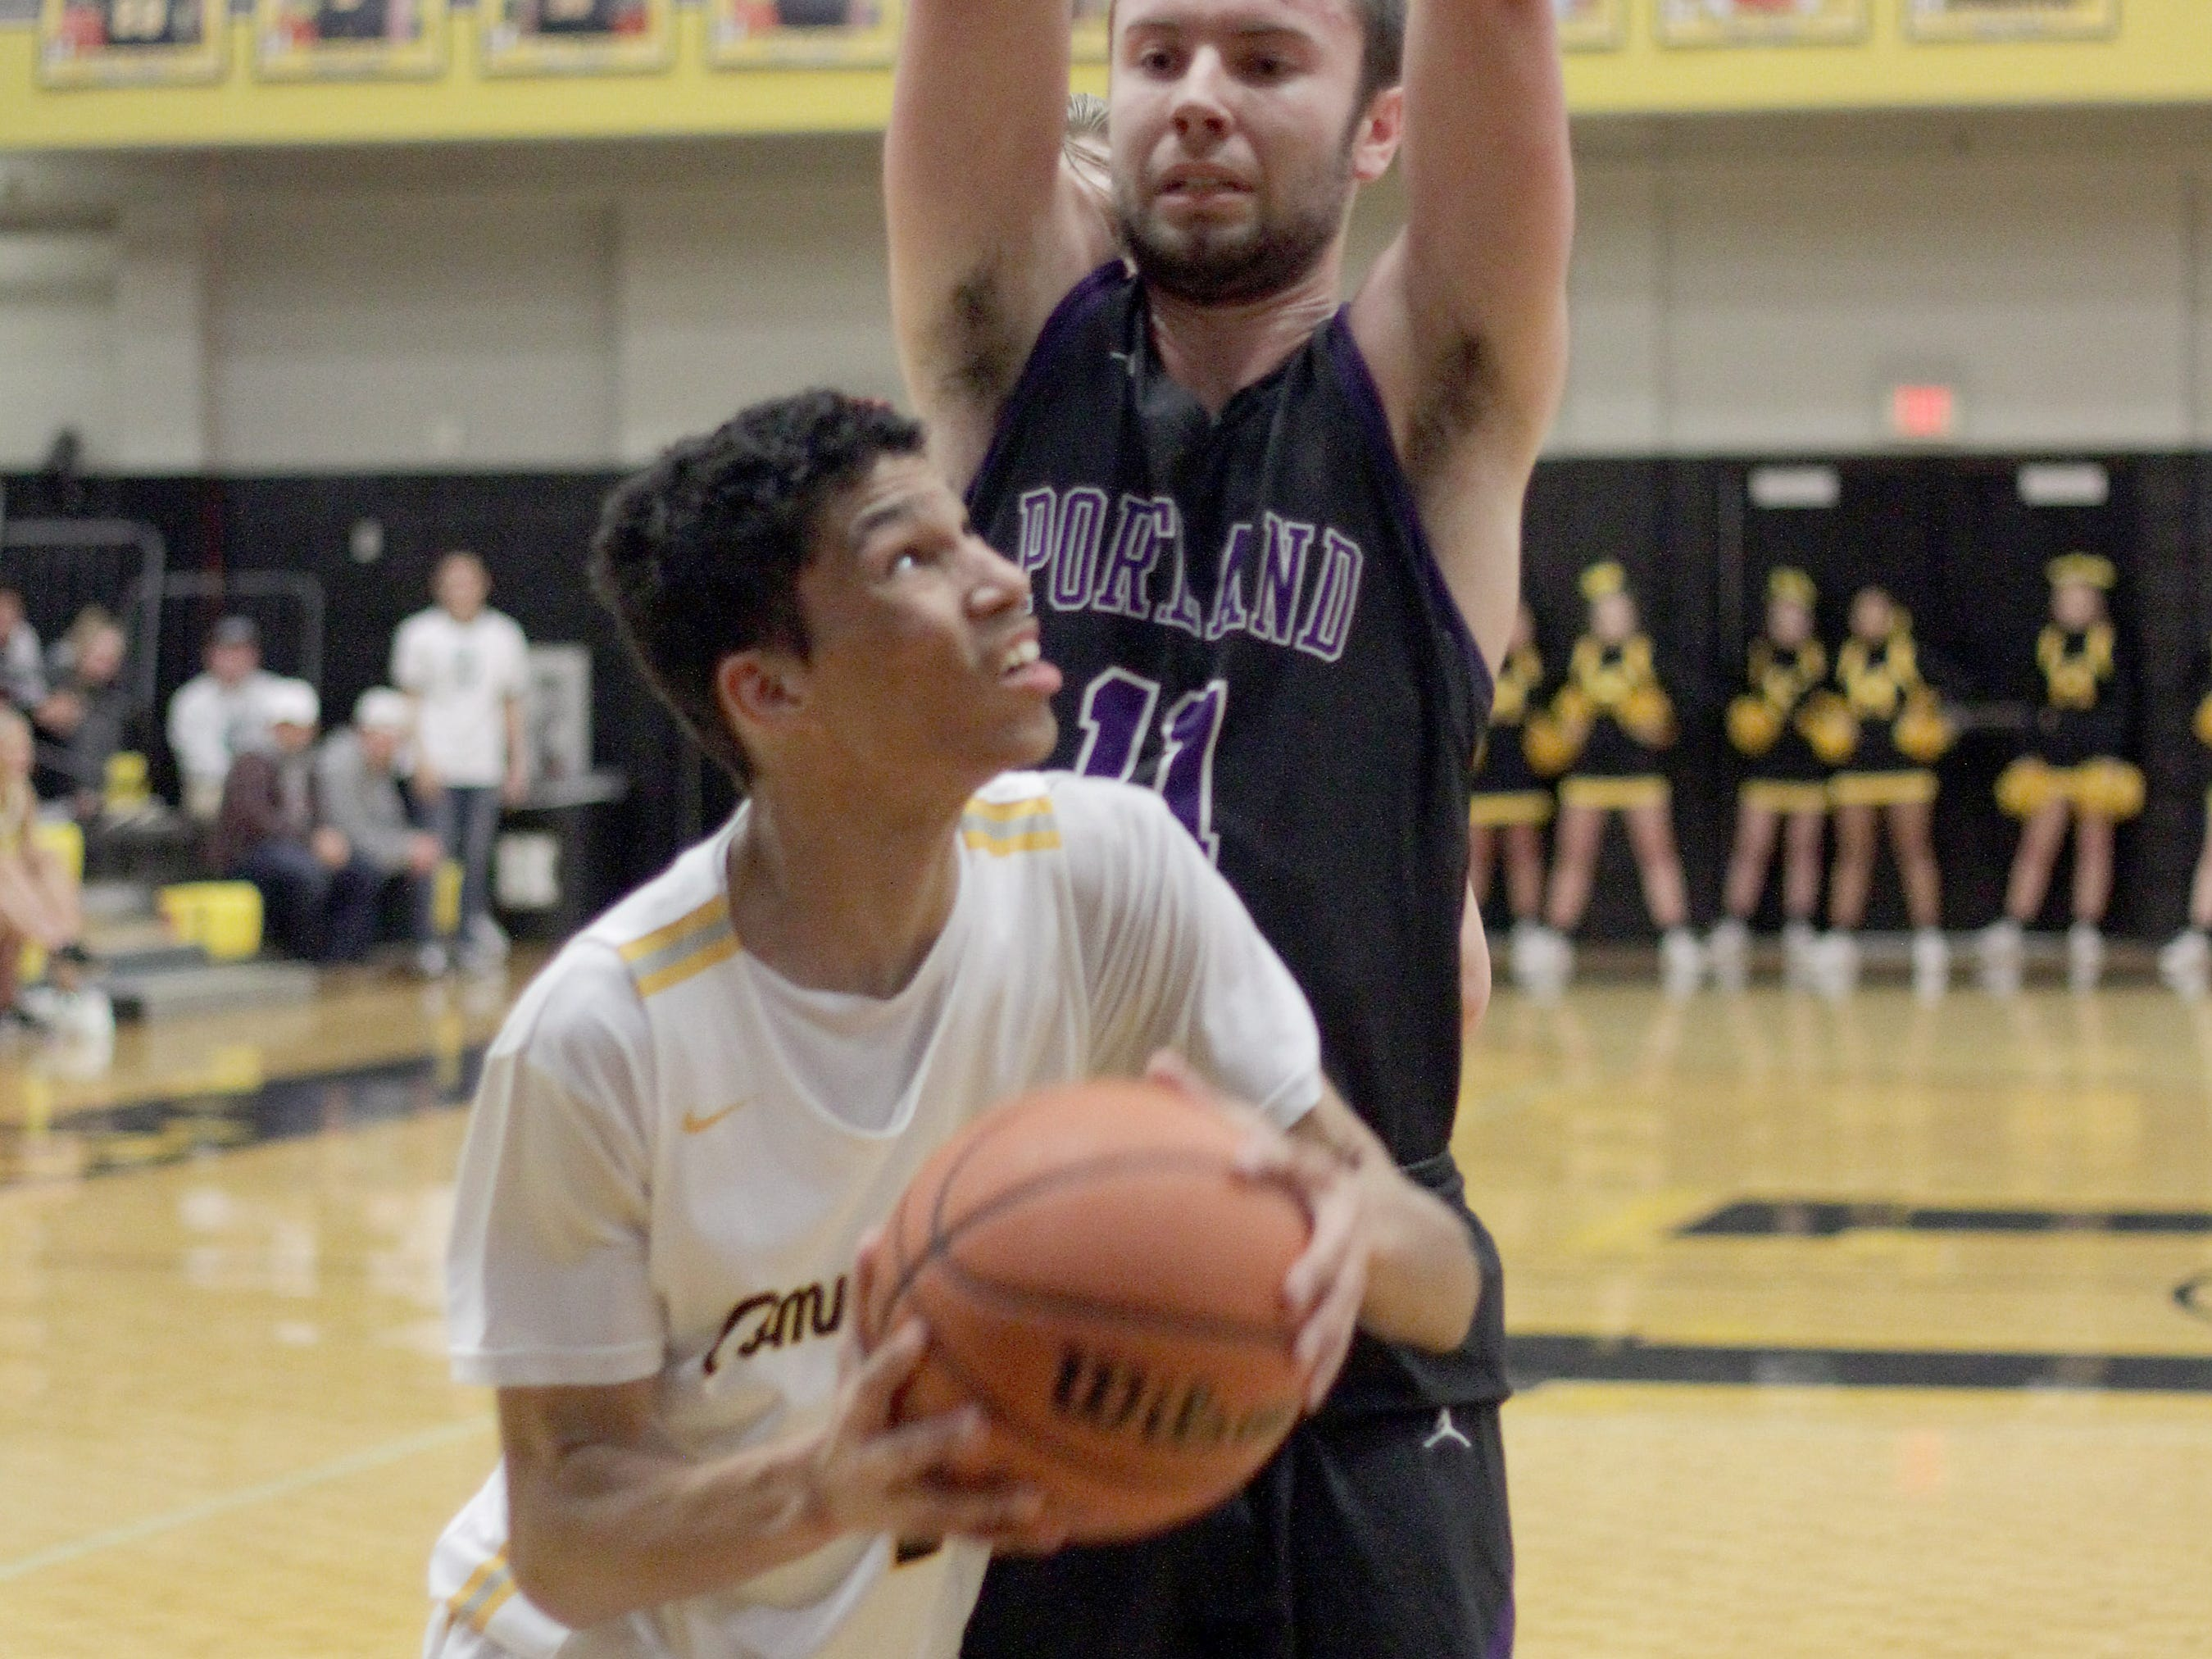 Hendersonville's Andruw Stratton looks to shoot as Portland's Austin Hicks looms from above on Friday, January 4, 2019. Hendersonville won 62-39.